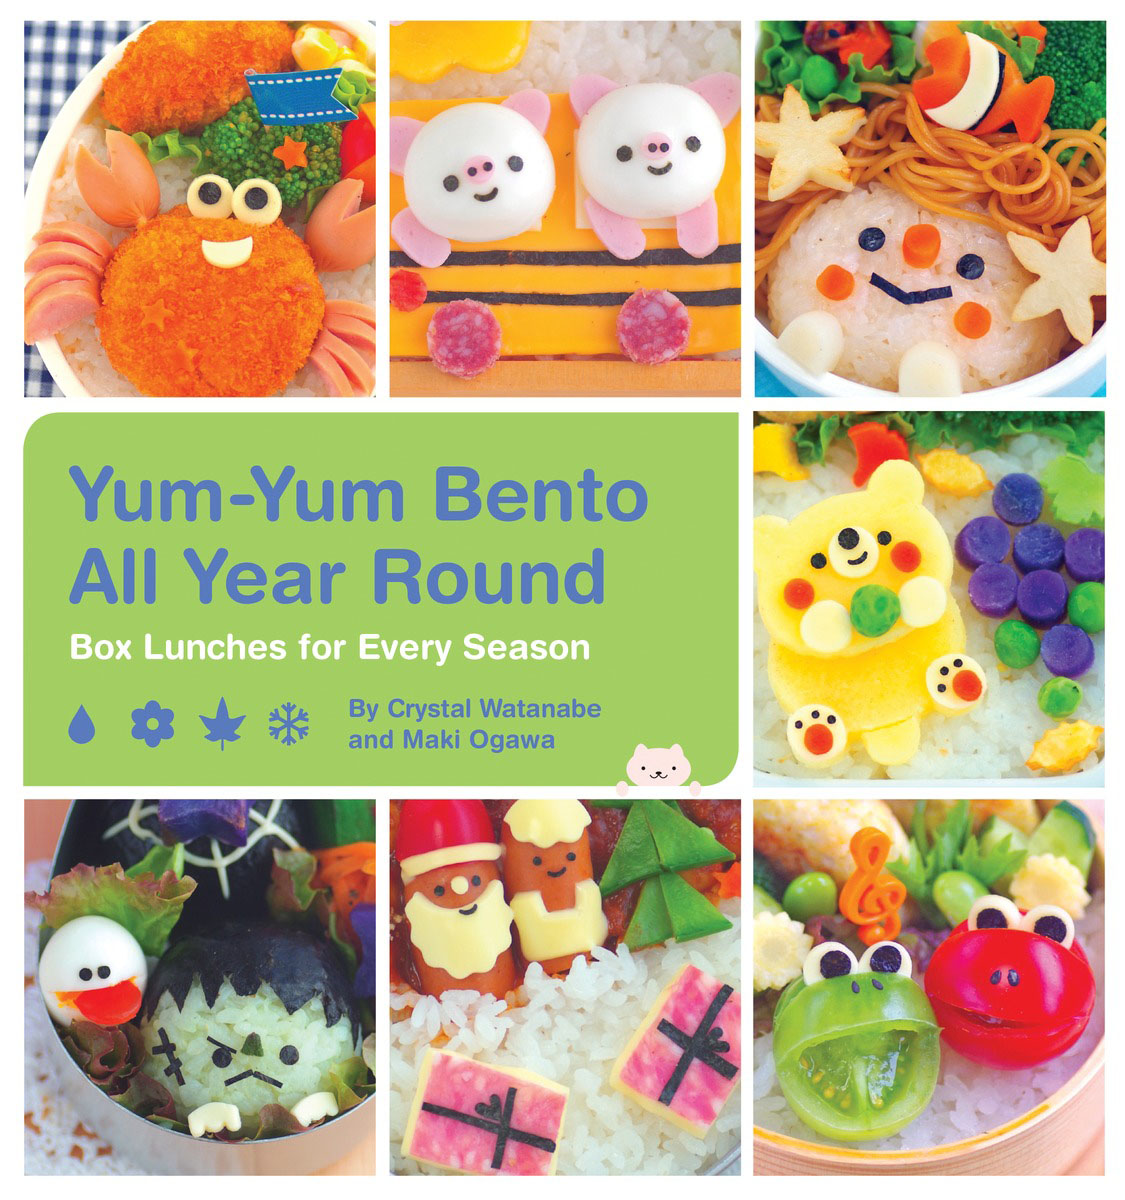 Yum-Yum Bento All Year Round denim lunch bag kid bento box insulated pack picnic drink food thermal ice cooler leisure accessories supplies product